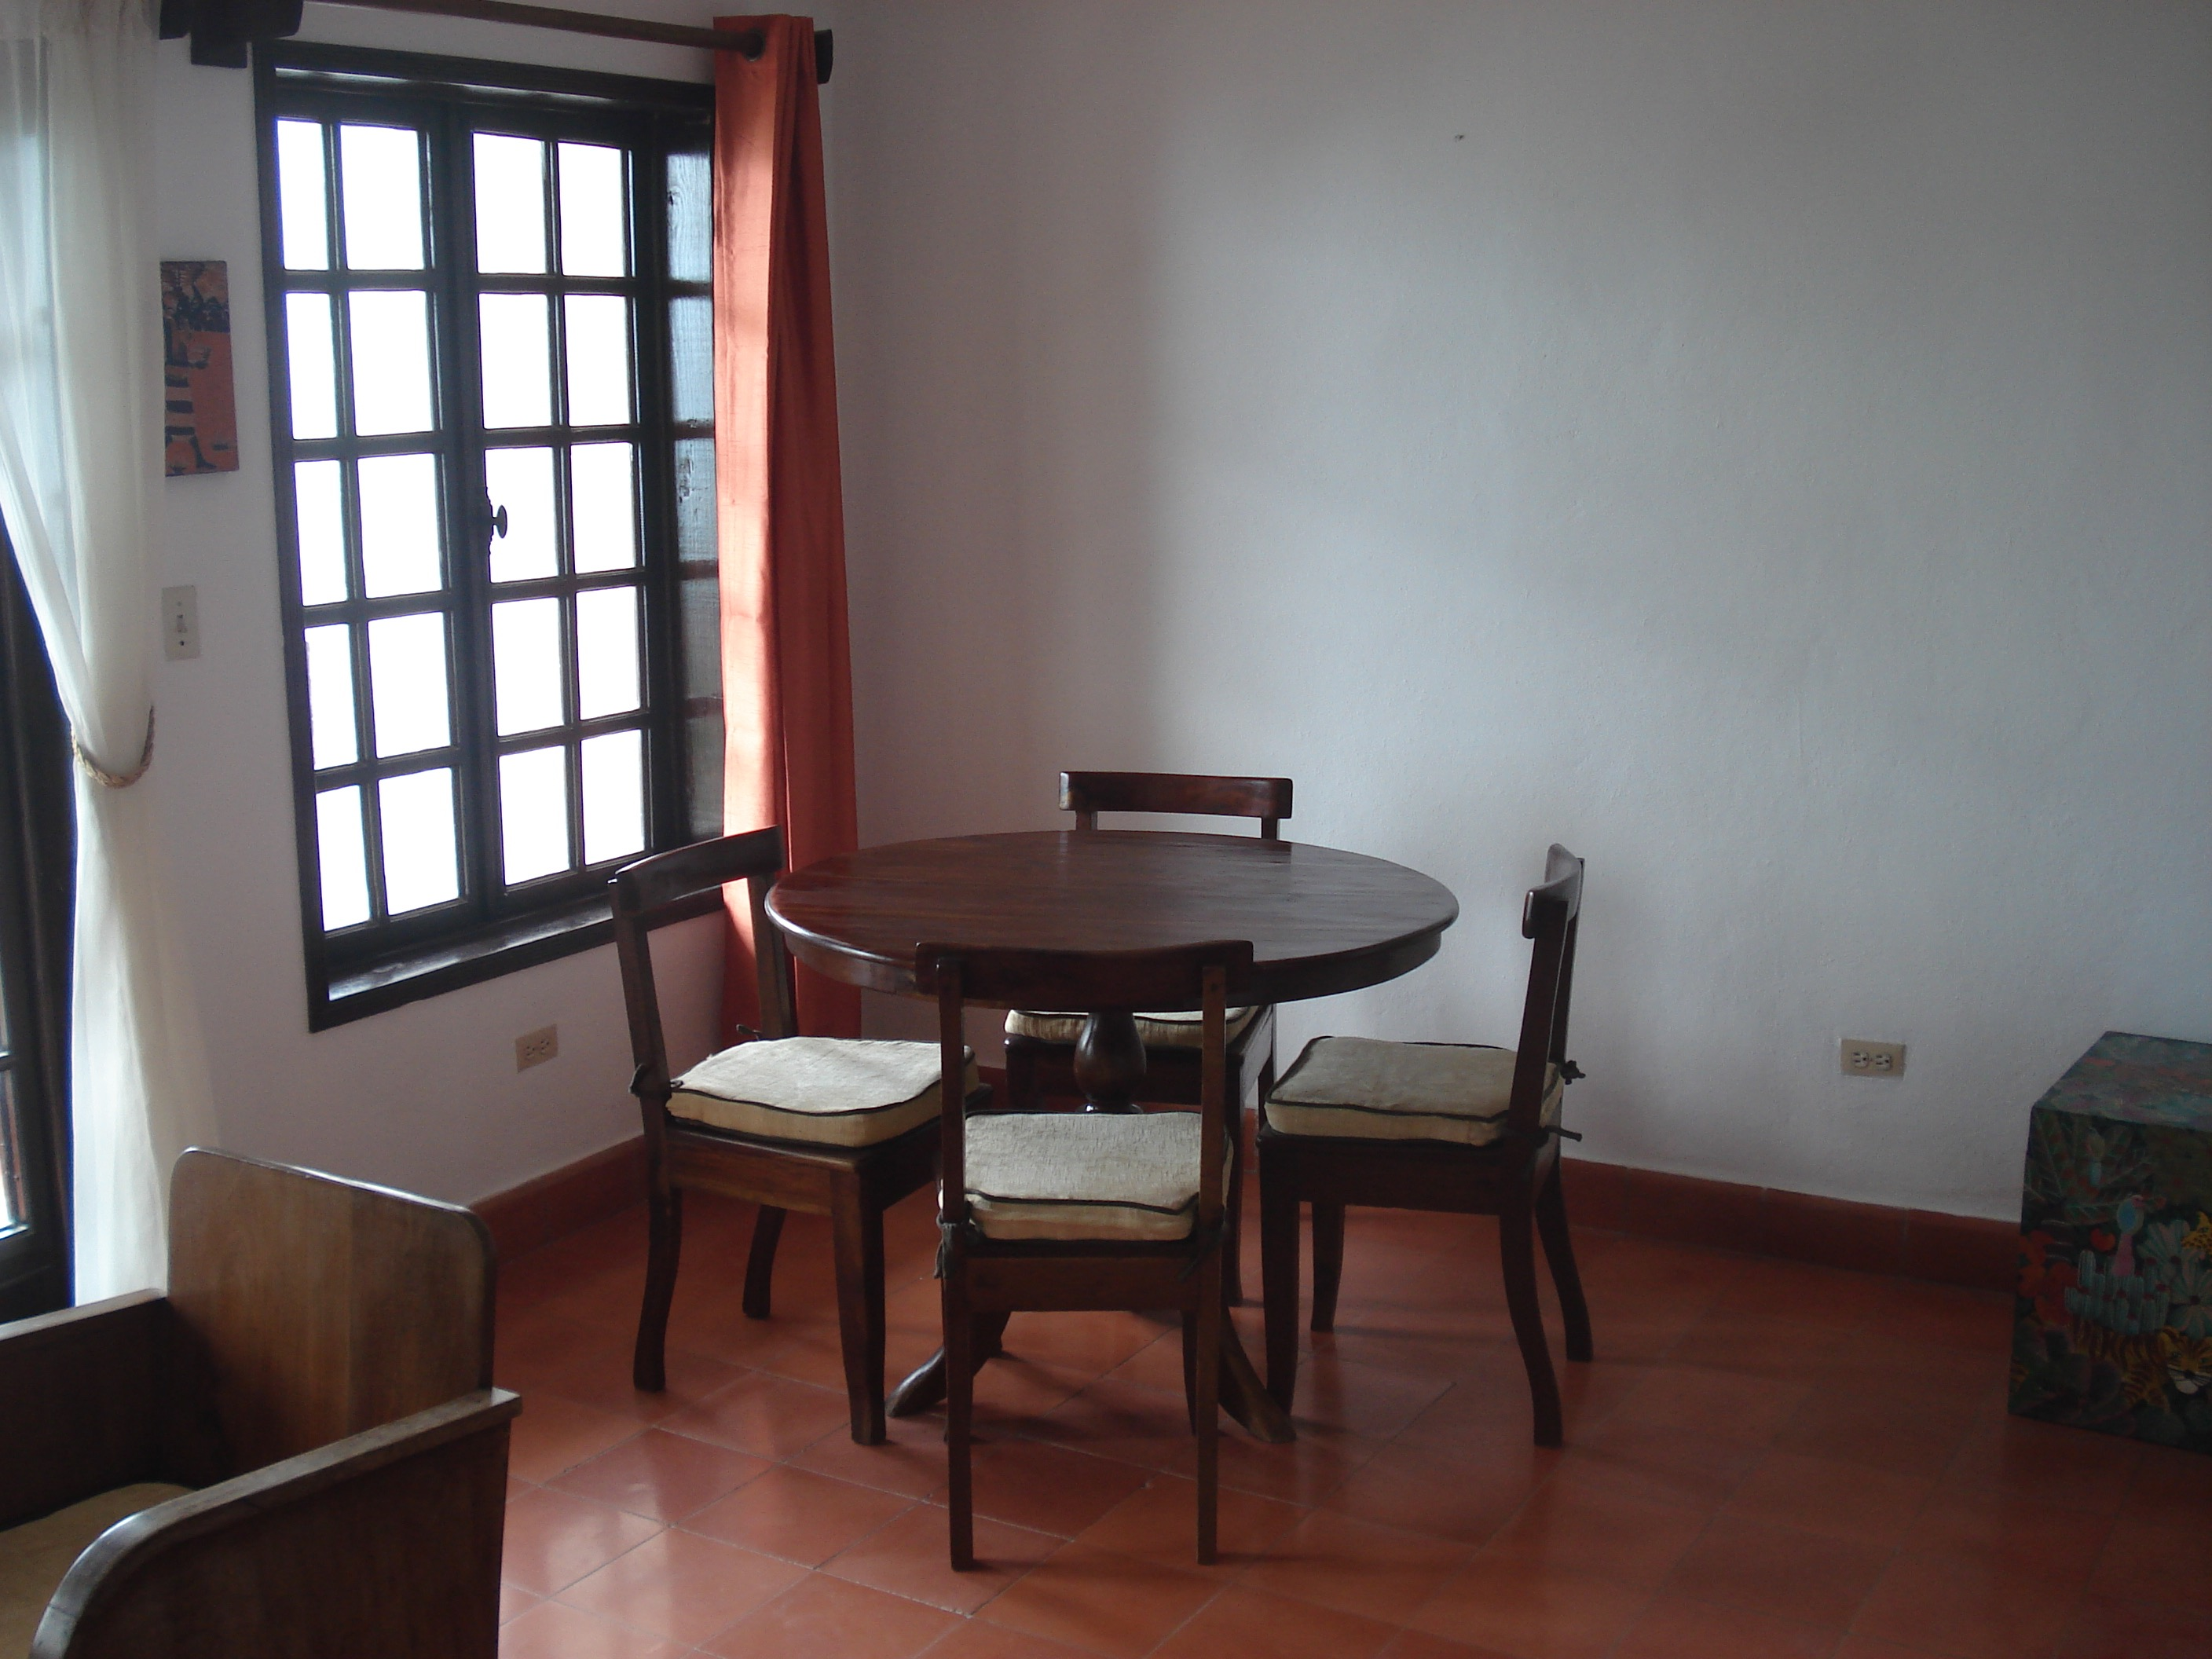 1 bedroom apartment, fully furnished in Montagne Noire